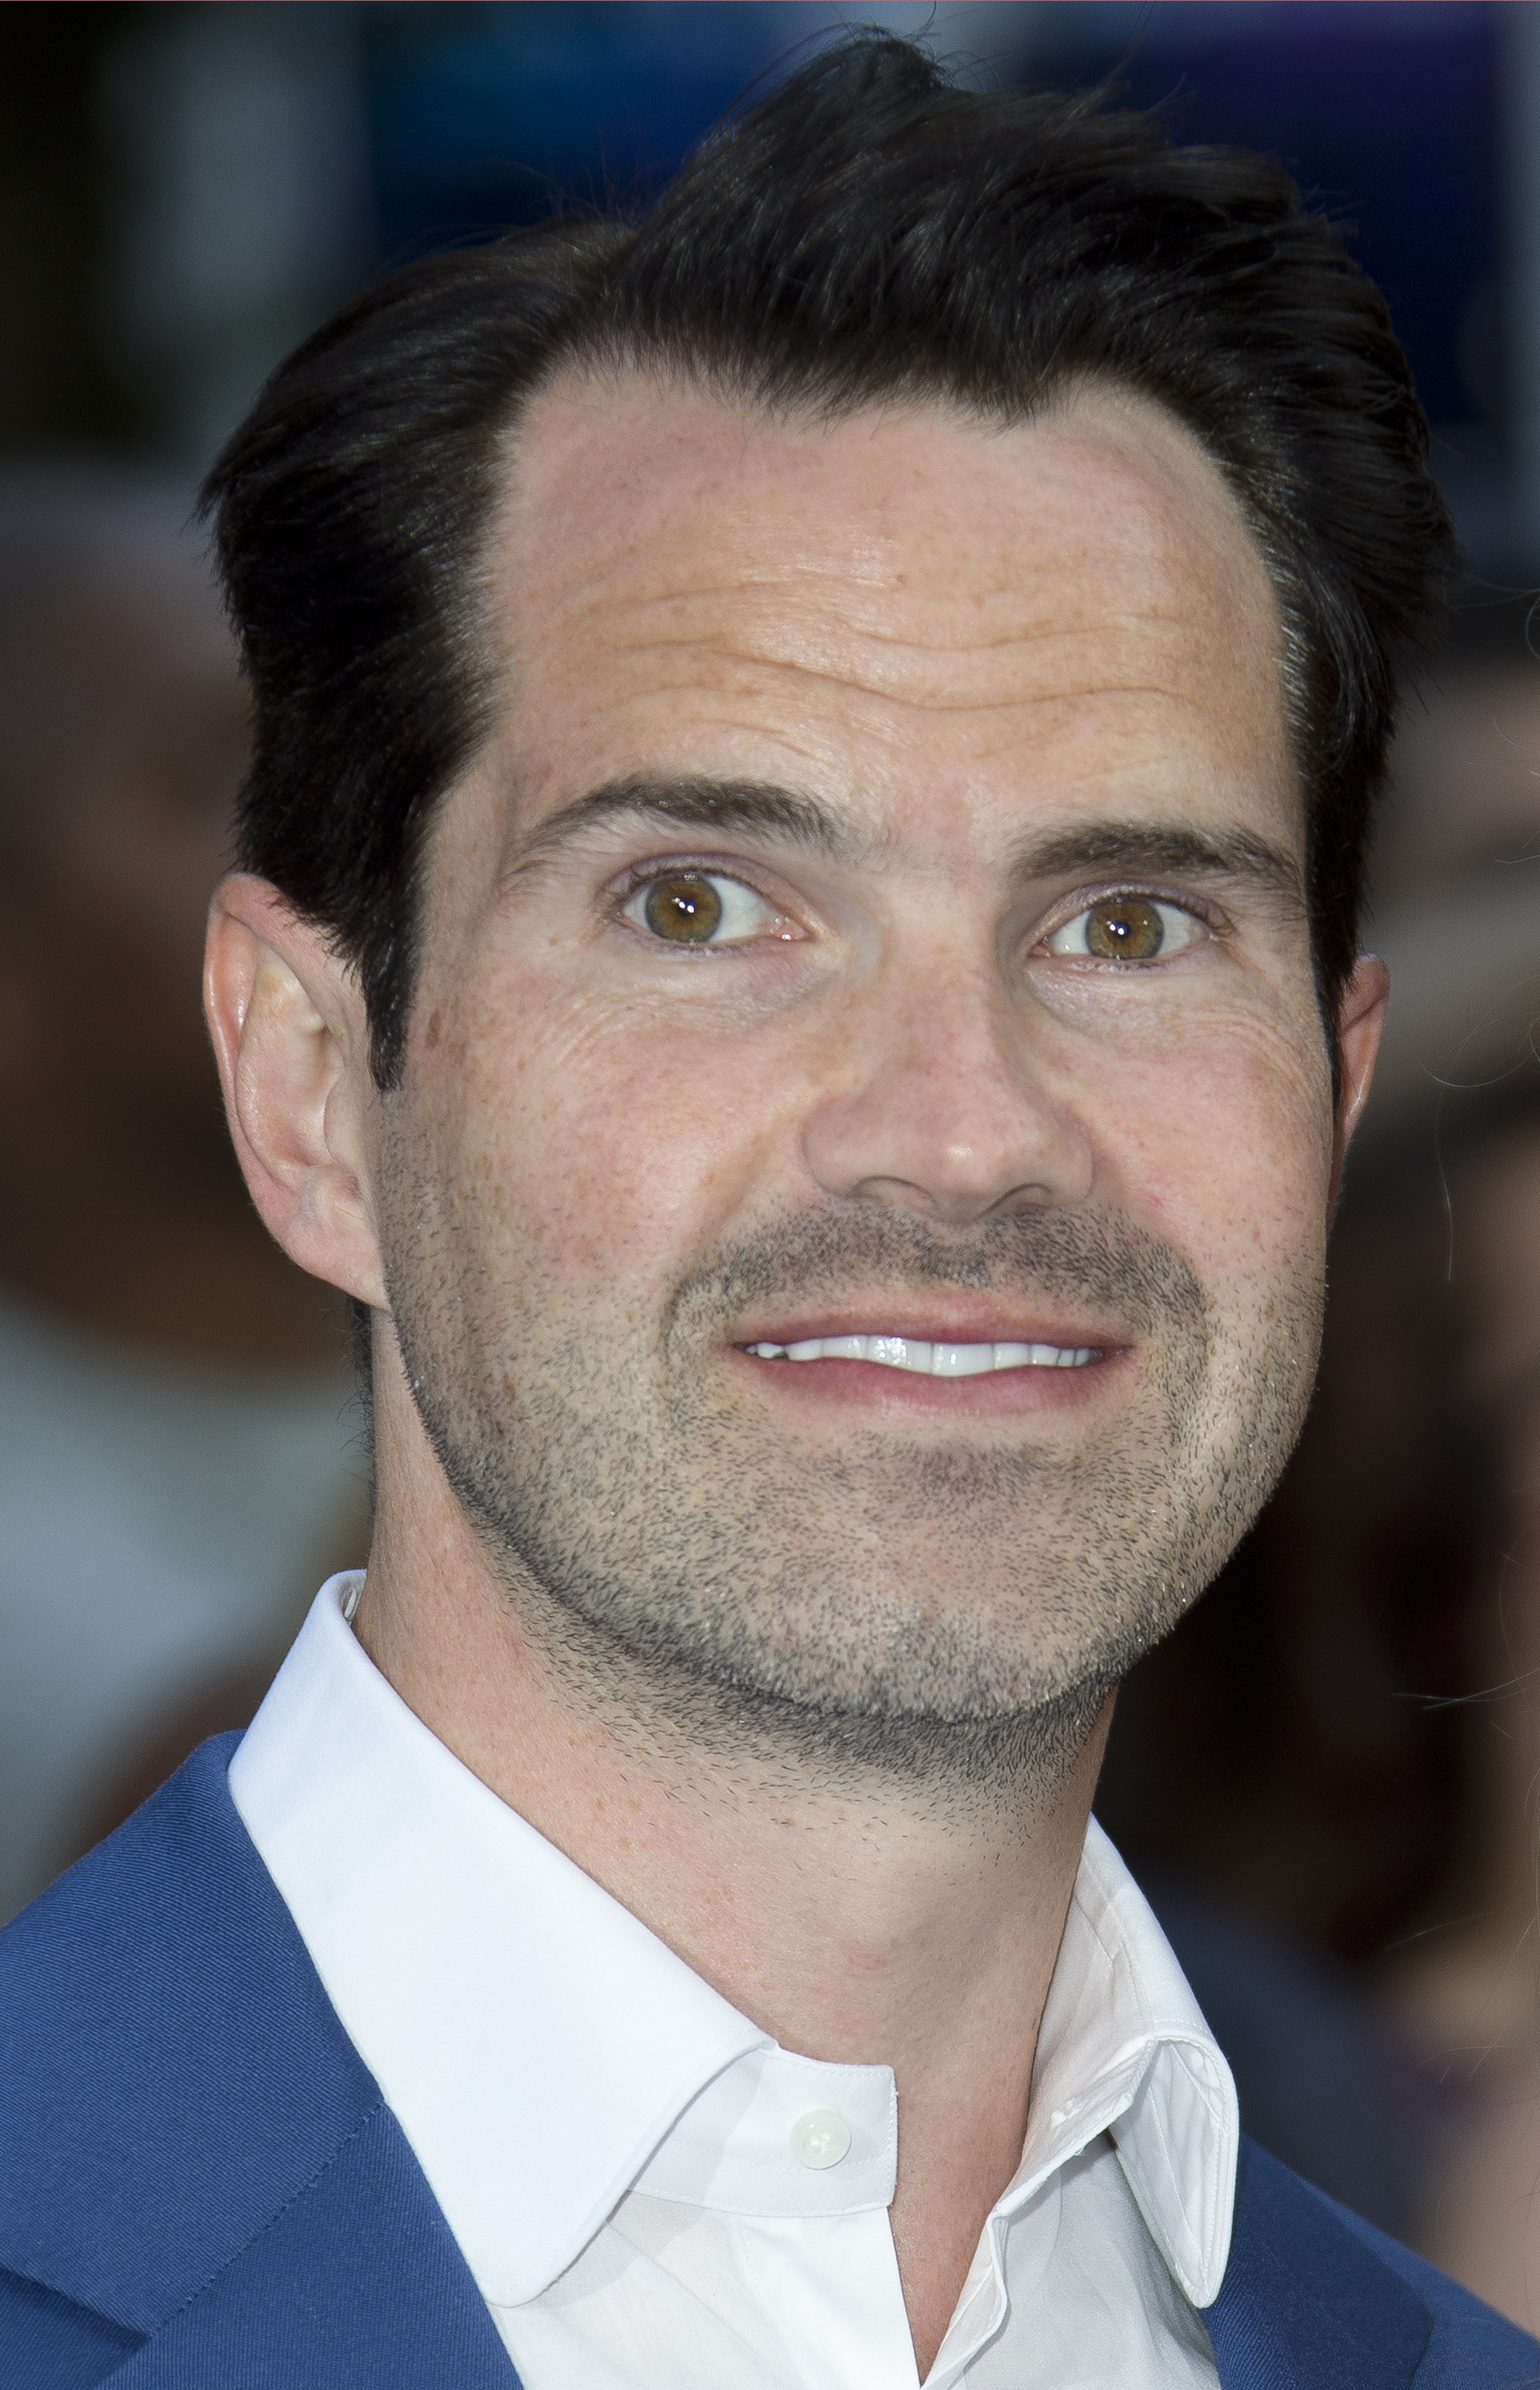 Uk Comic Jimmy Carr Finds Humor In All The Wrong Things The Boston